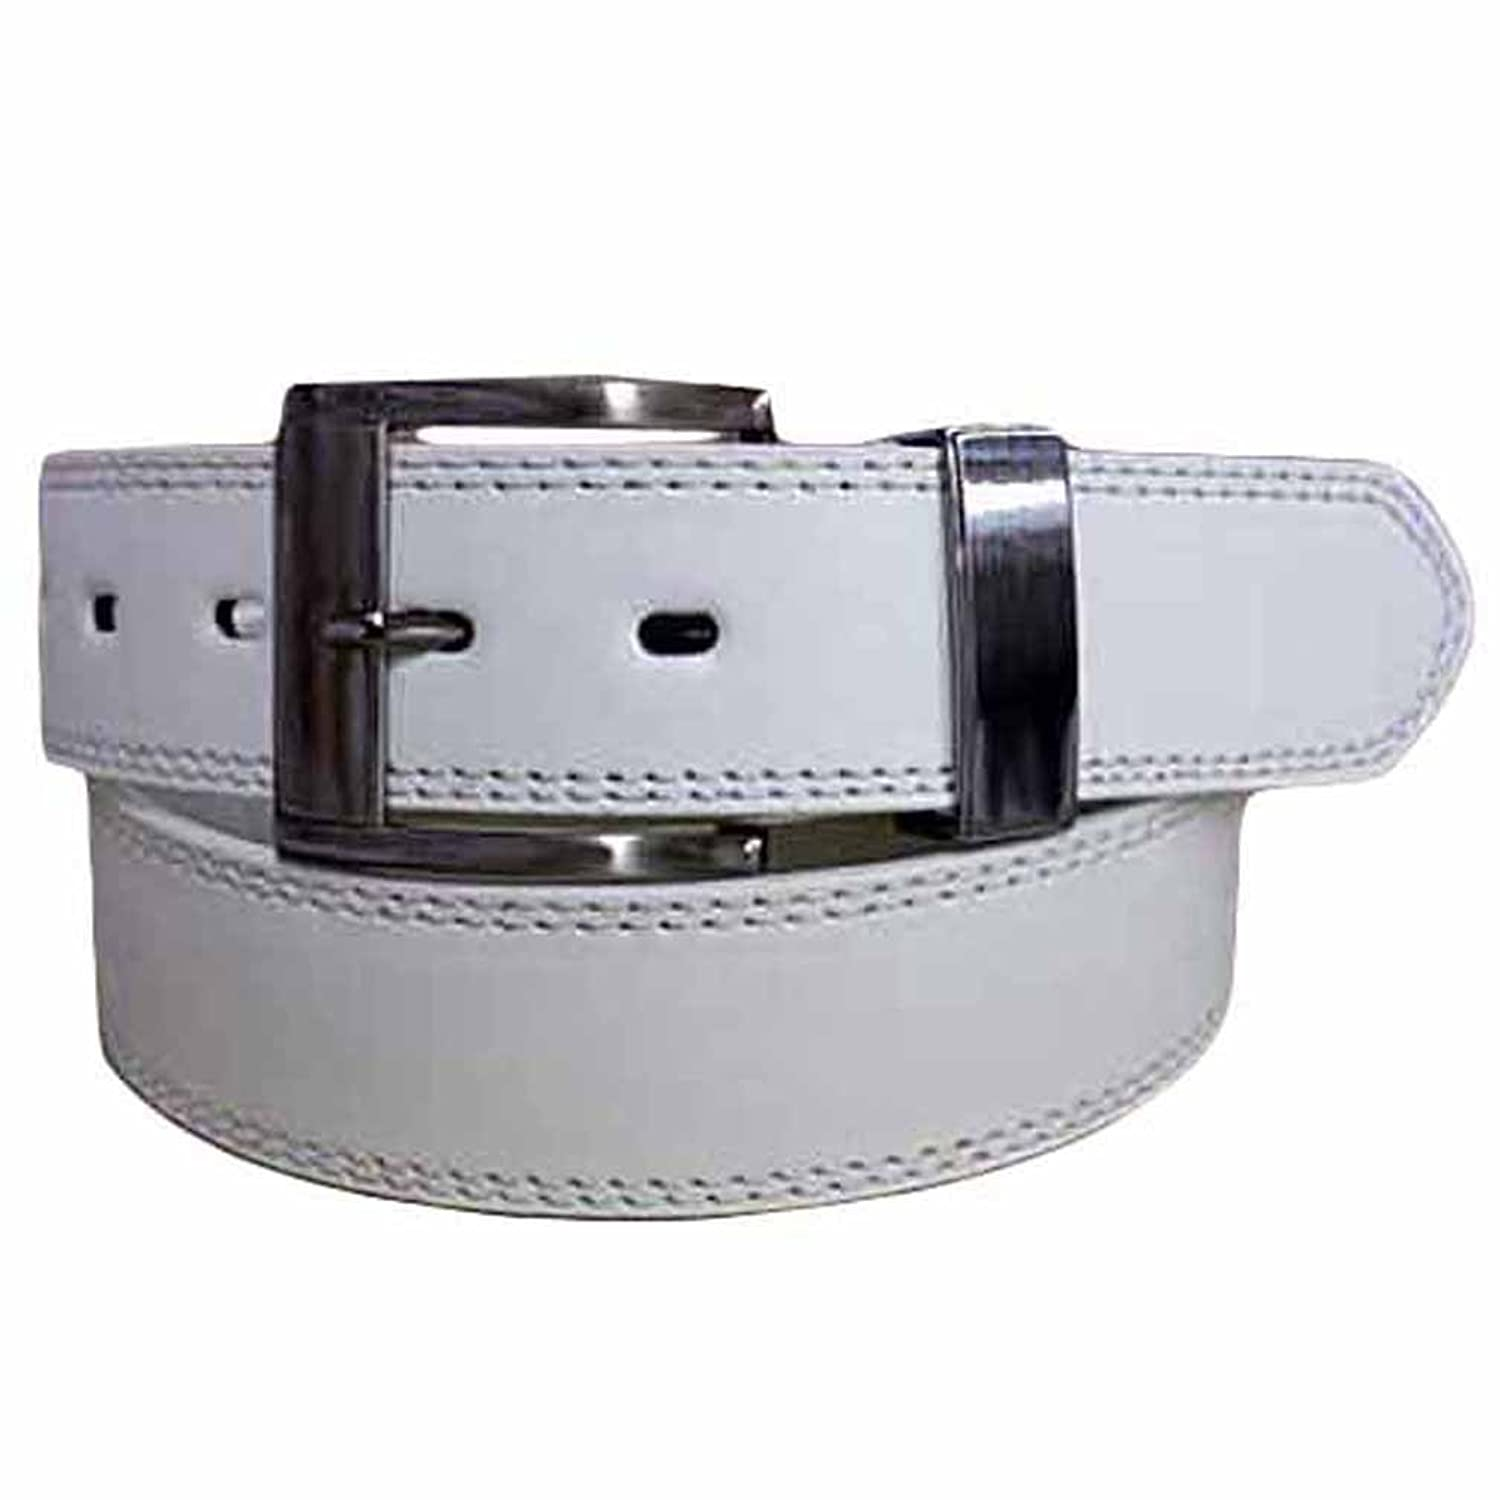 Luxury Divas White Leather Pants Belt With Chrome Buckle